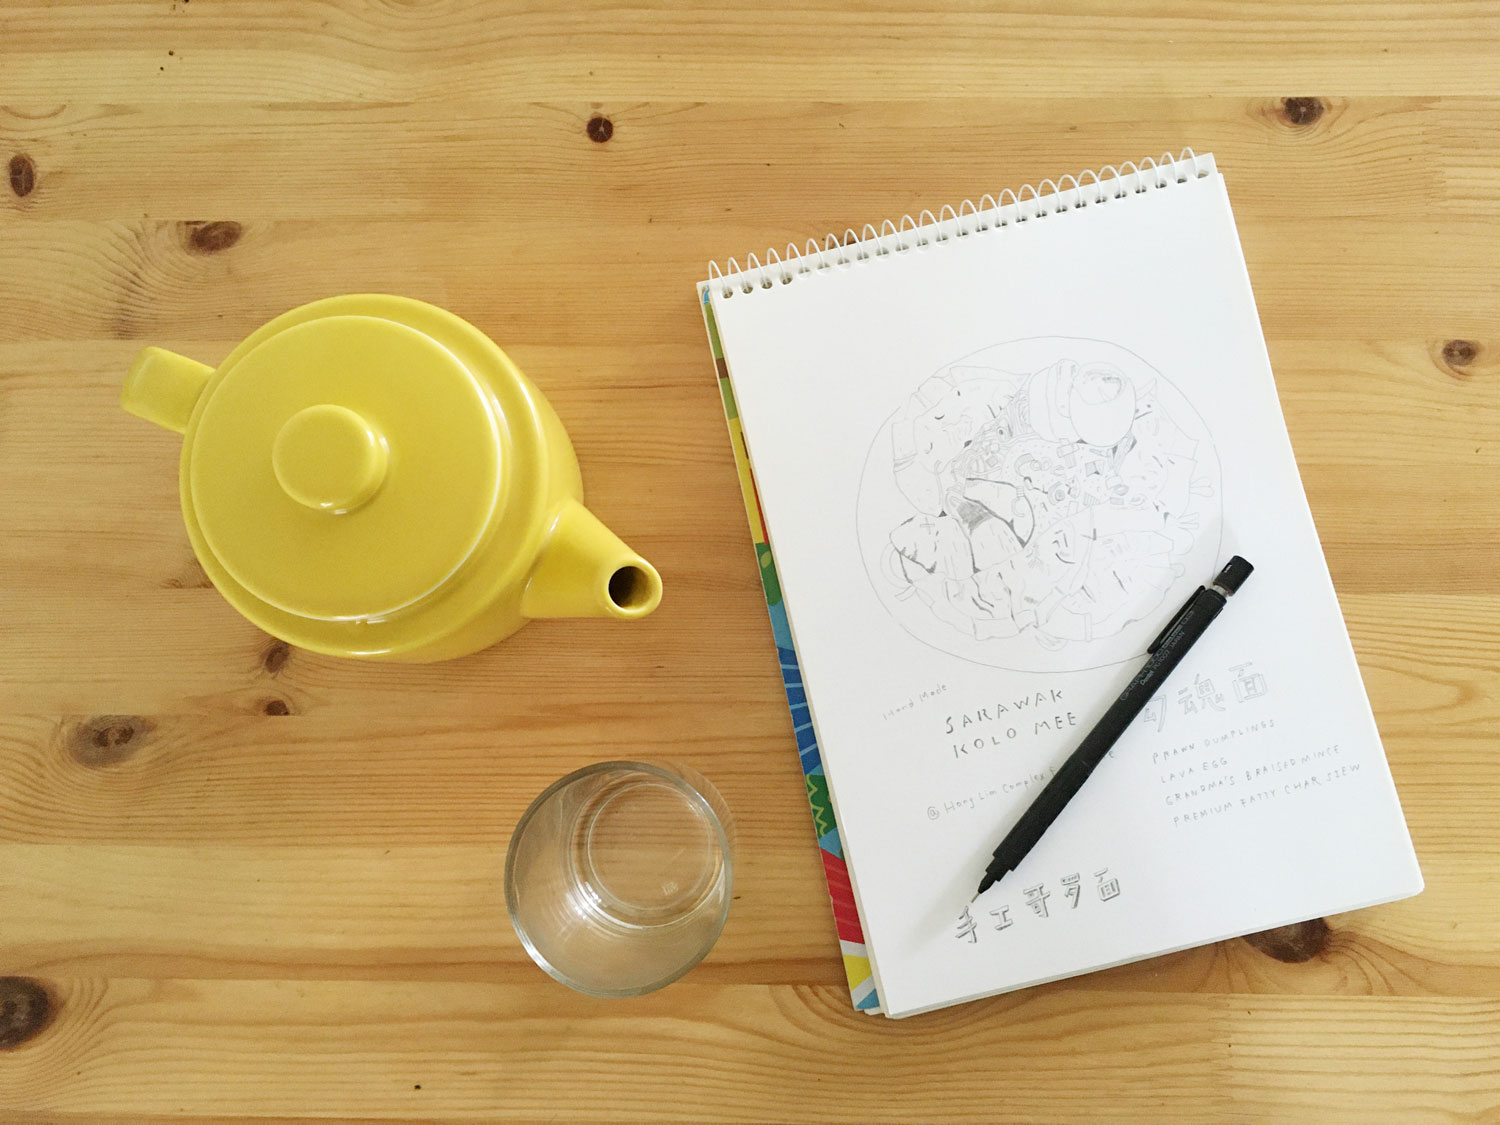 A sketch book resting on a table with a pot of tea.